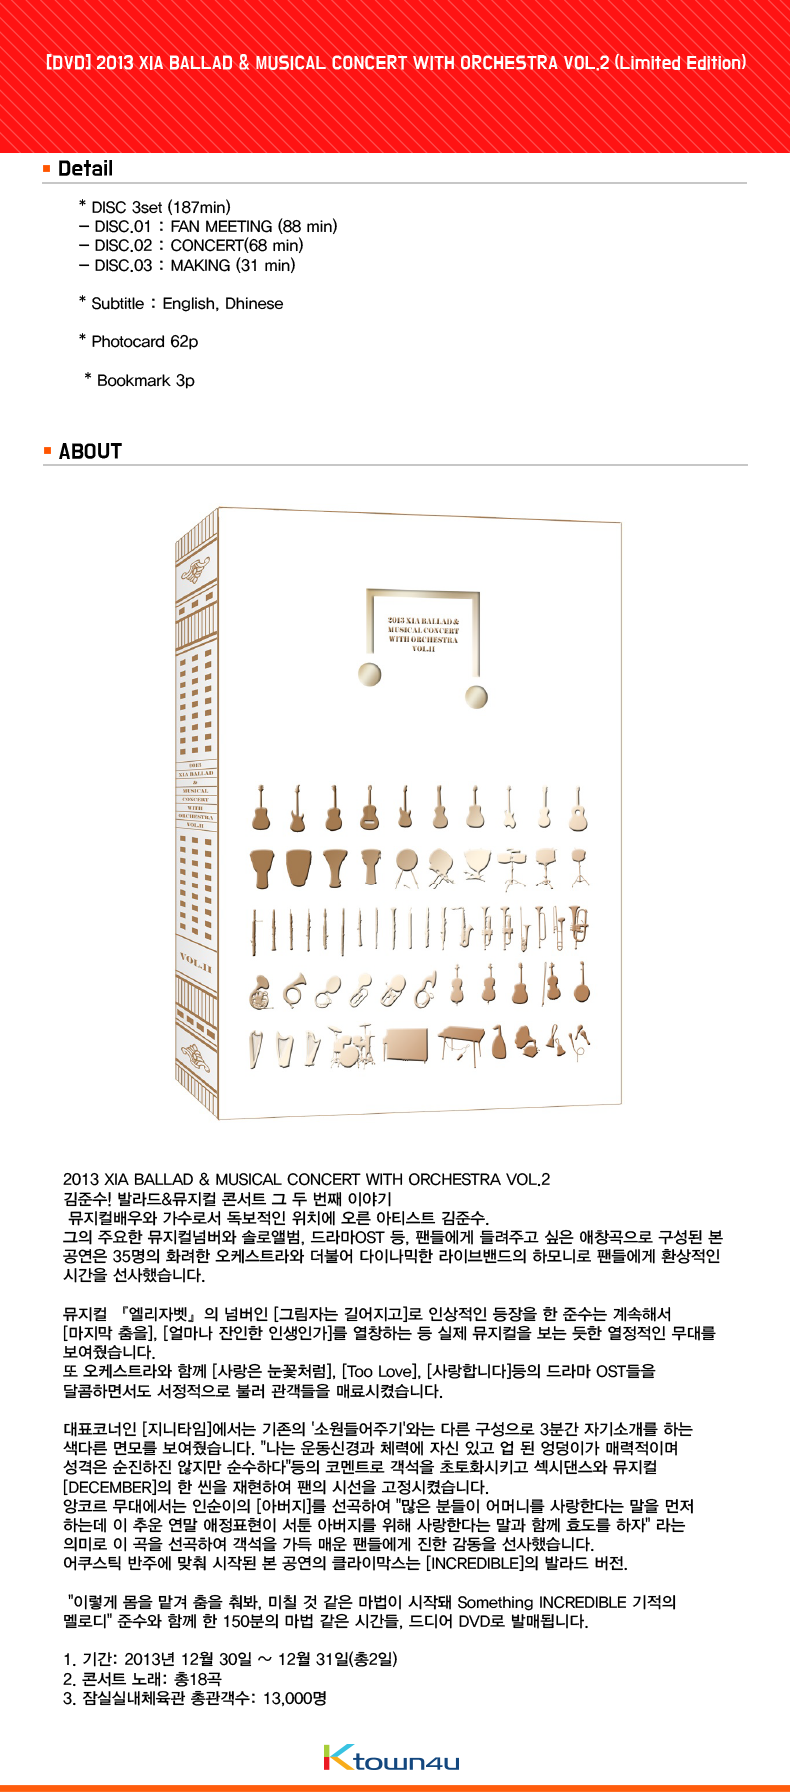 [DVD] [ジェイワイジェイ]  XIA BALLAD & MUSICAL CONCERT WITH ORCHESTRA VOL.2 (Limited Edition)